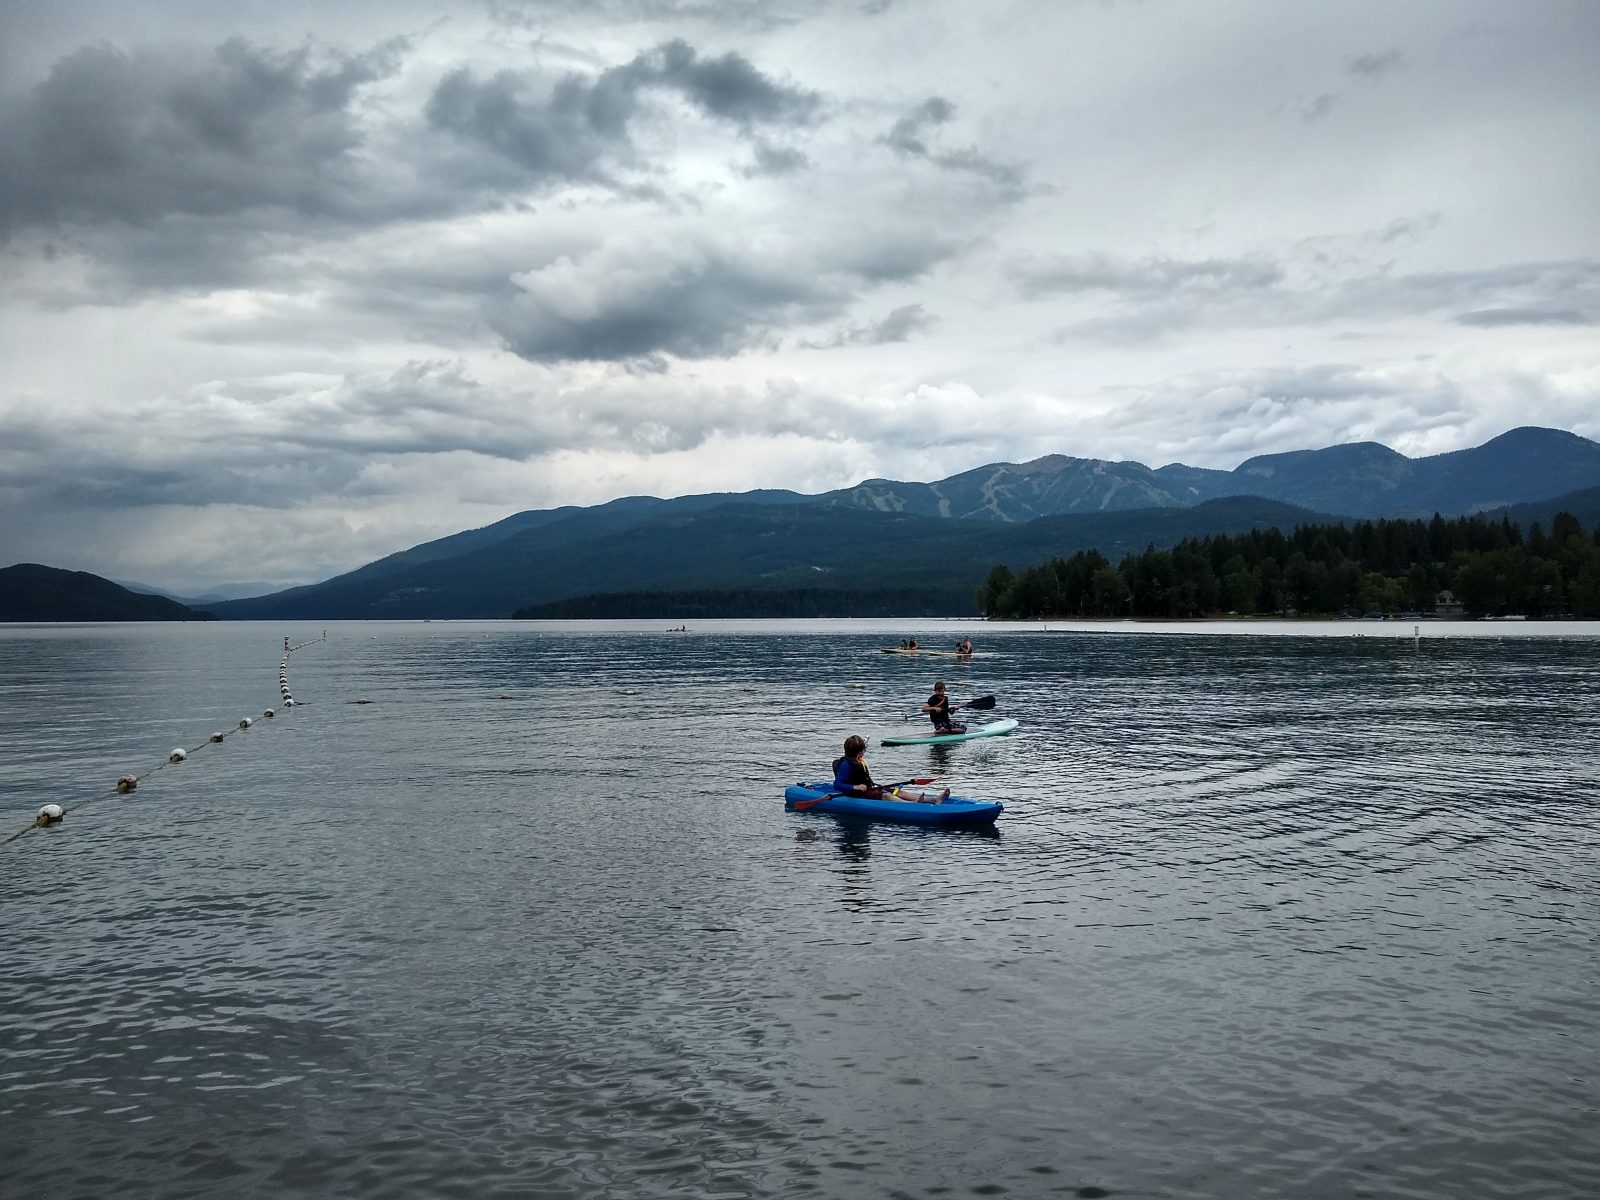 Whitefish Lake - June 20, 2020